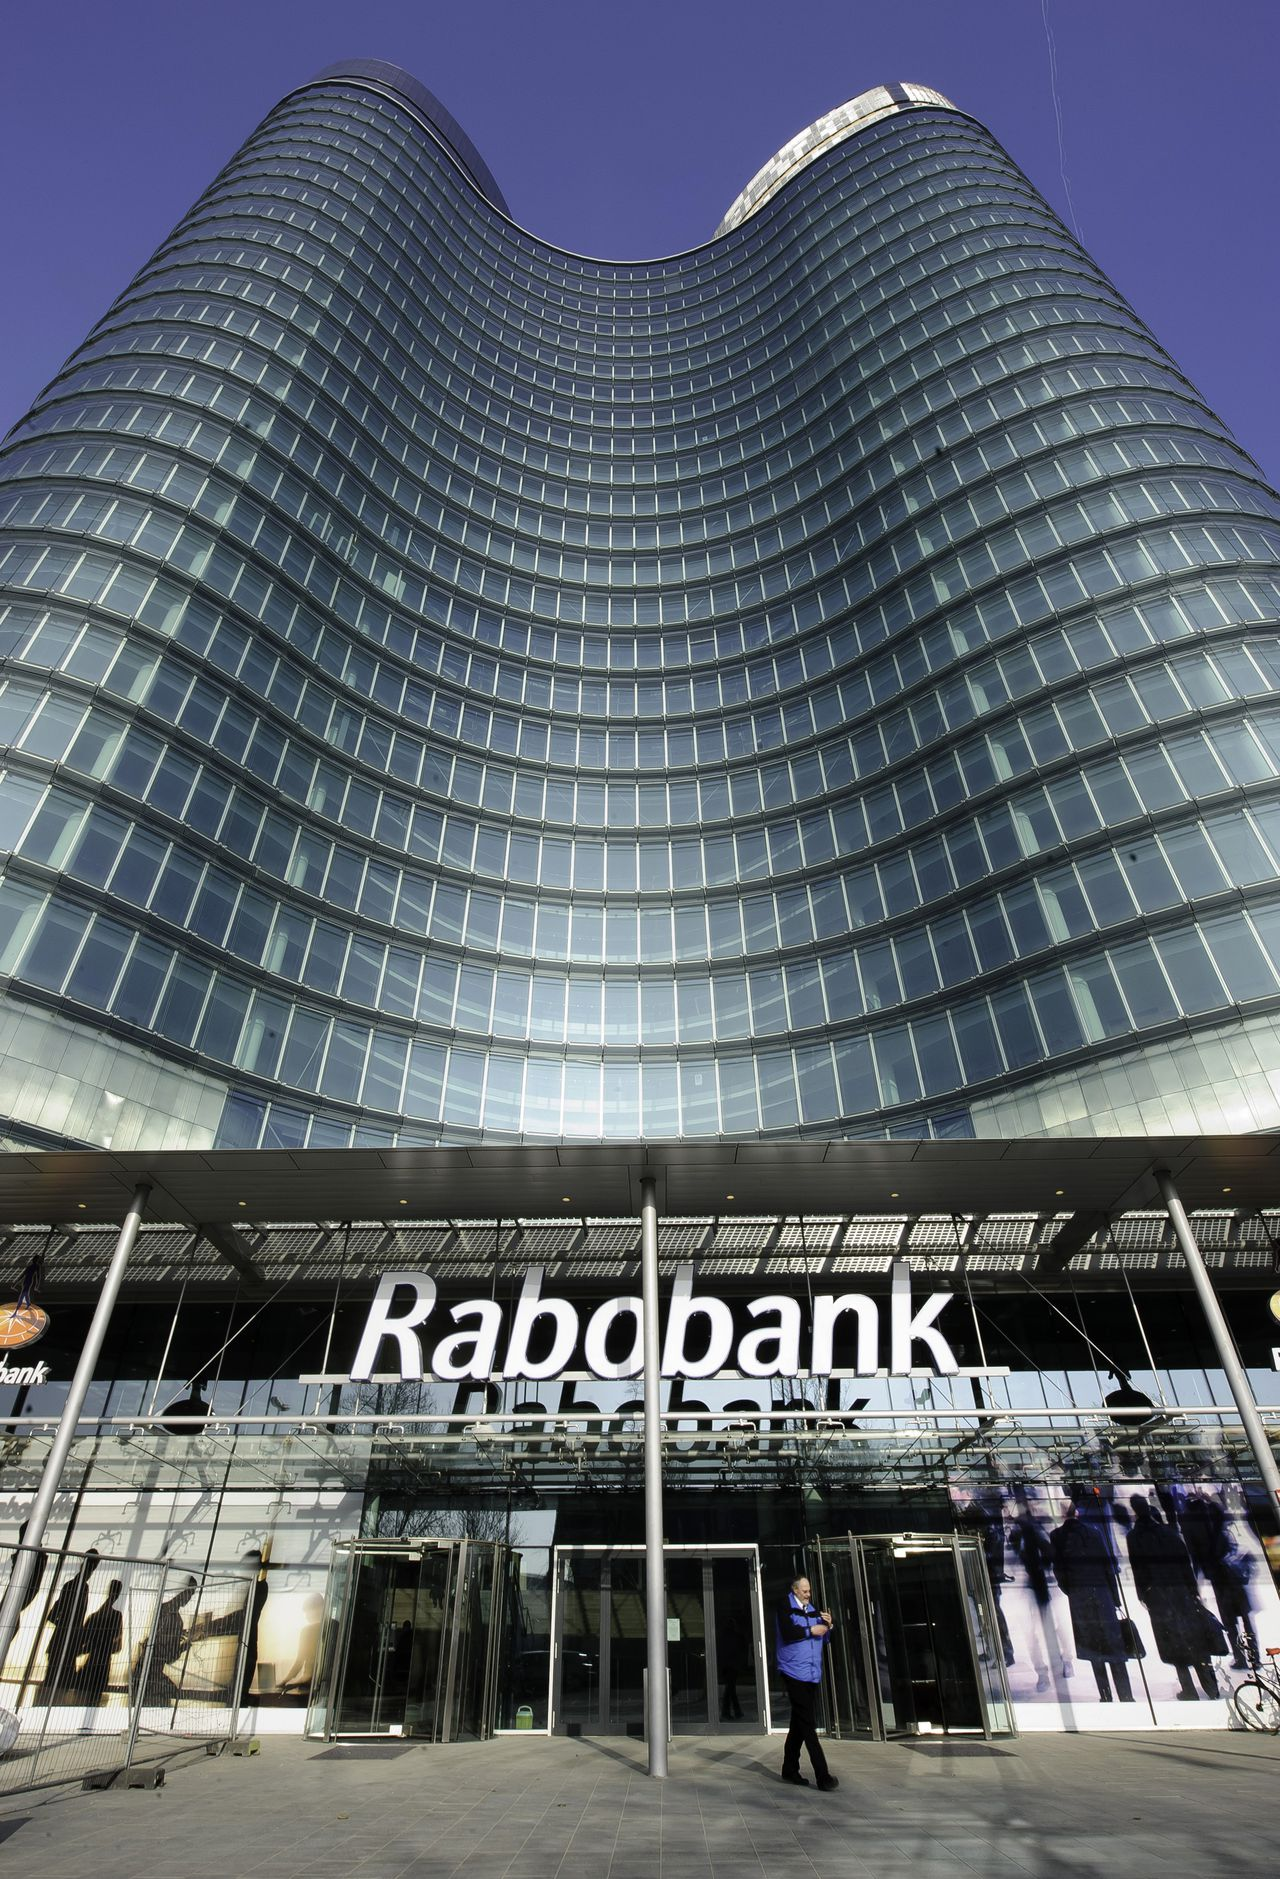 The headquarters of Rabobank Groep NV stand in Utrecht, the Netherlands, on Wednesday, March 2, 2011. Rabobank Groep's profit rose to 2.77 billion euros ($3.84 billion) in 2010 from 2.21 billion euros a year earlier, the world's biggest agricultural lender said today in a statement handed out at its headquarters in Utrecht, the Netherlands. Photographer: Jock Fistick/Bloomberg